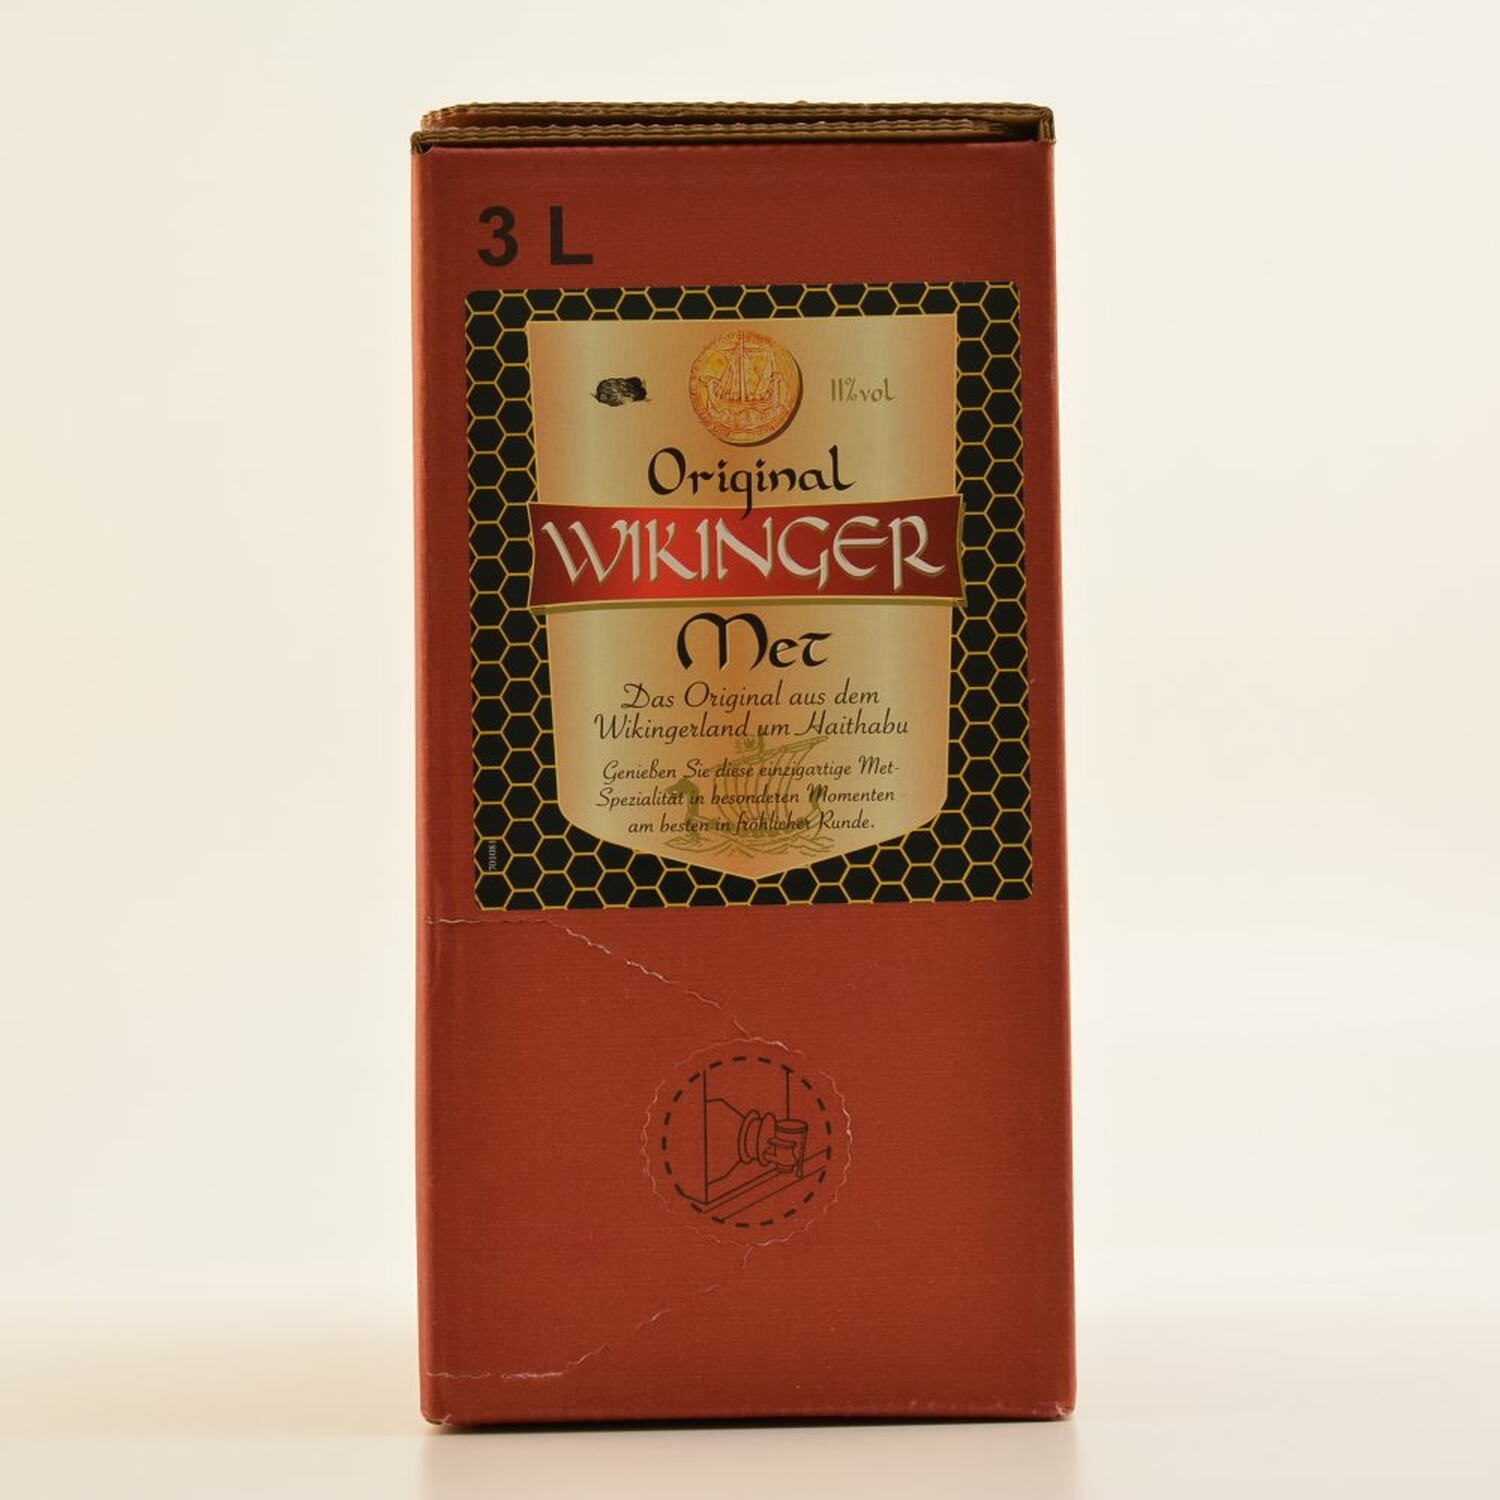 Original Wikinger Met 3 Liter Bag Box 11% (7,63 € pro 1 l)